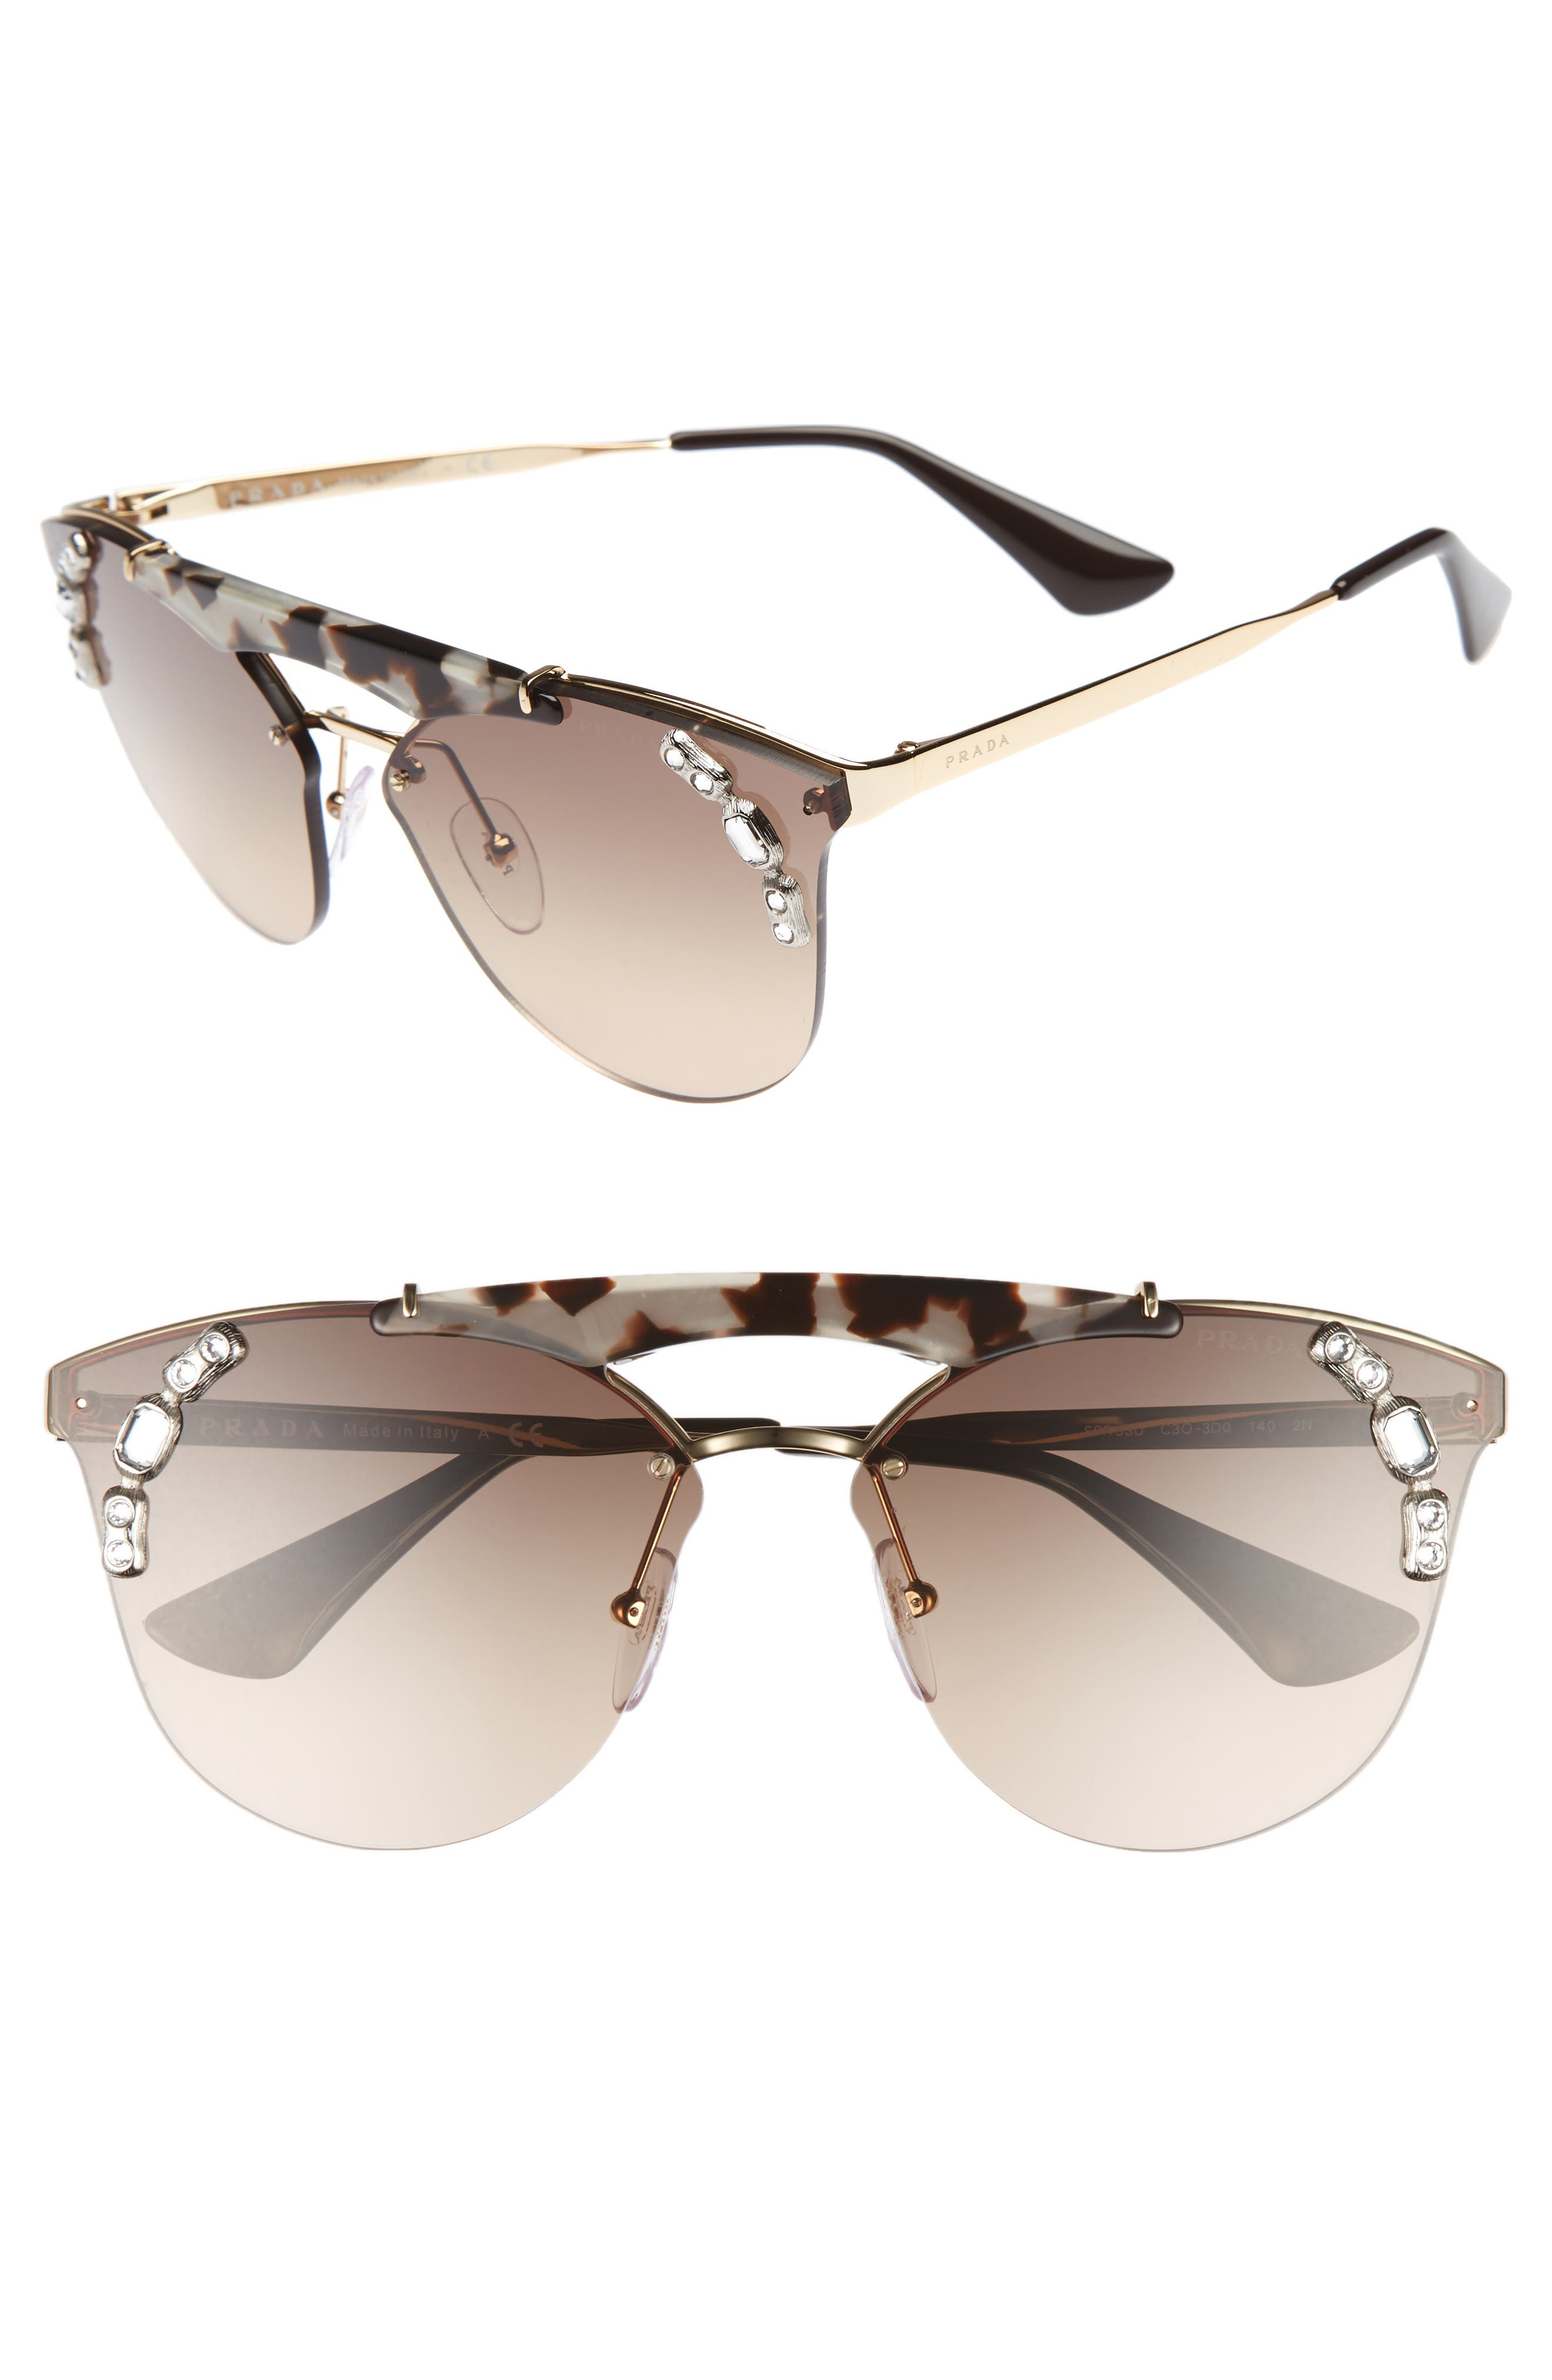 53mm Embellished Rimless Sunglasses,                         Main,                         color,